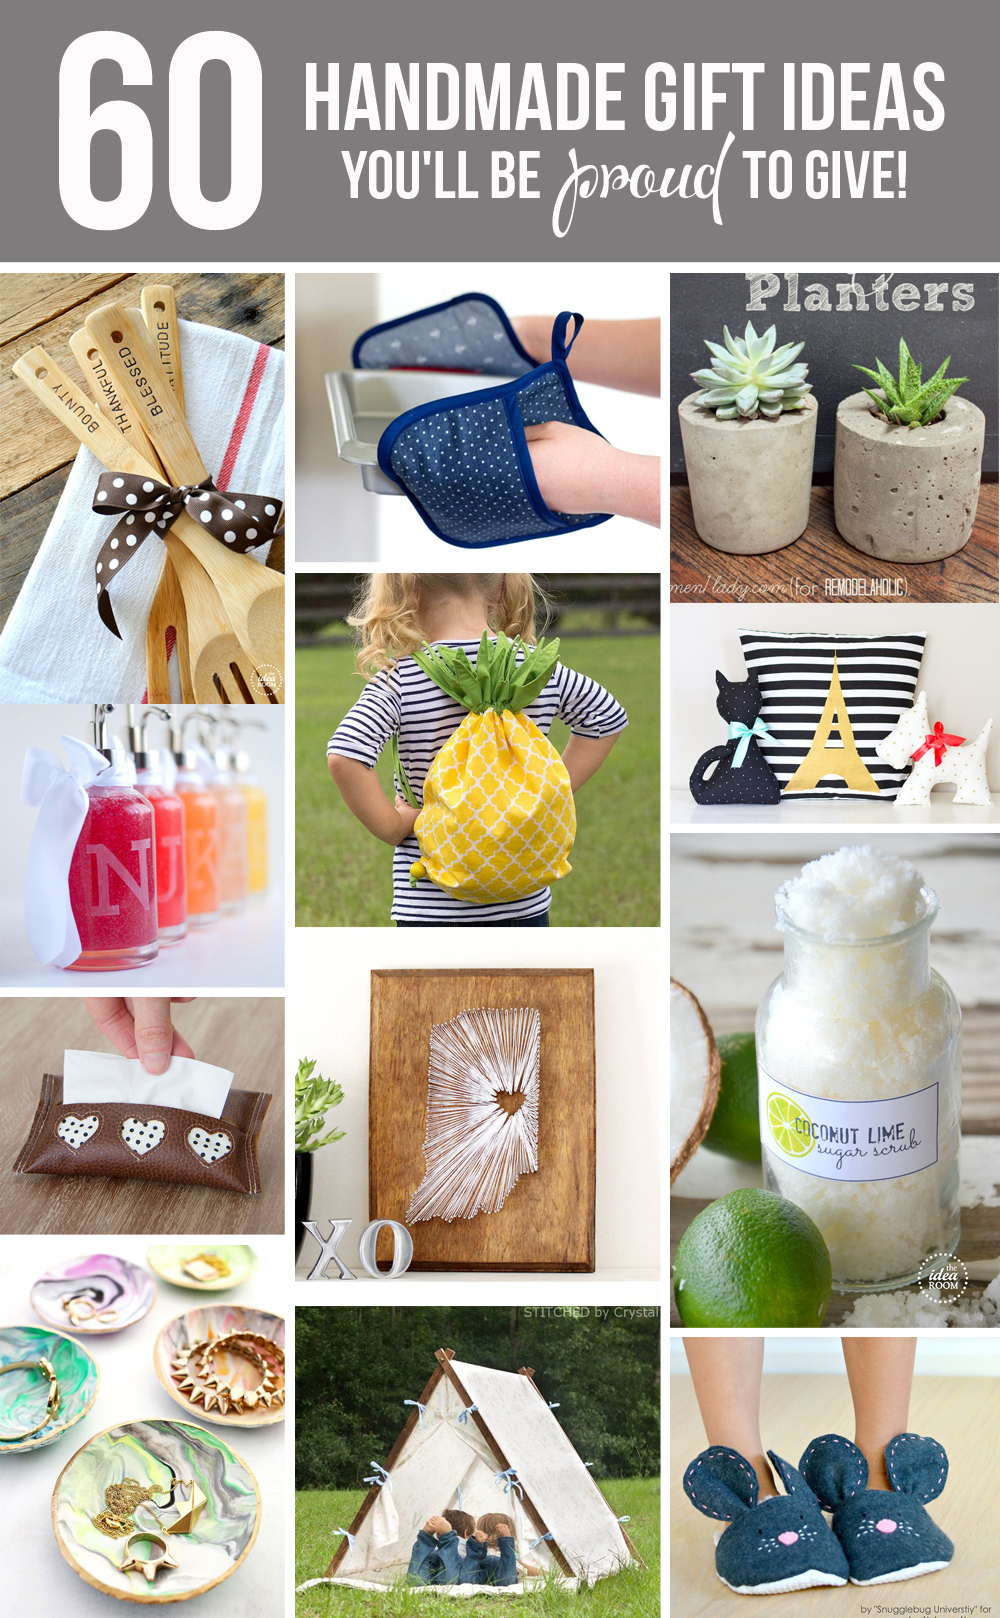 60 Handmade GIFT IDEAS...you'll be PROUD to give!   via Make It and Love It